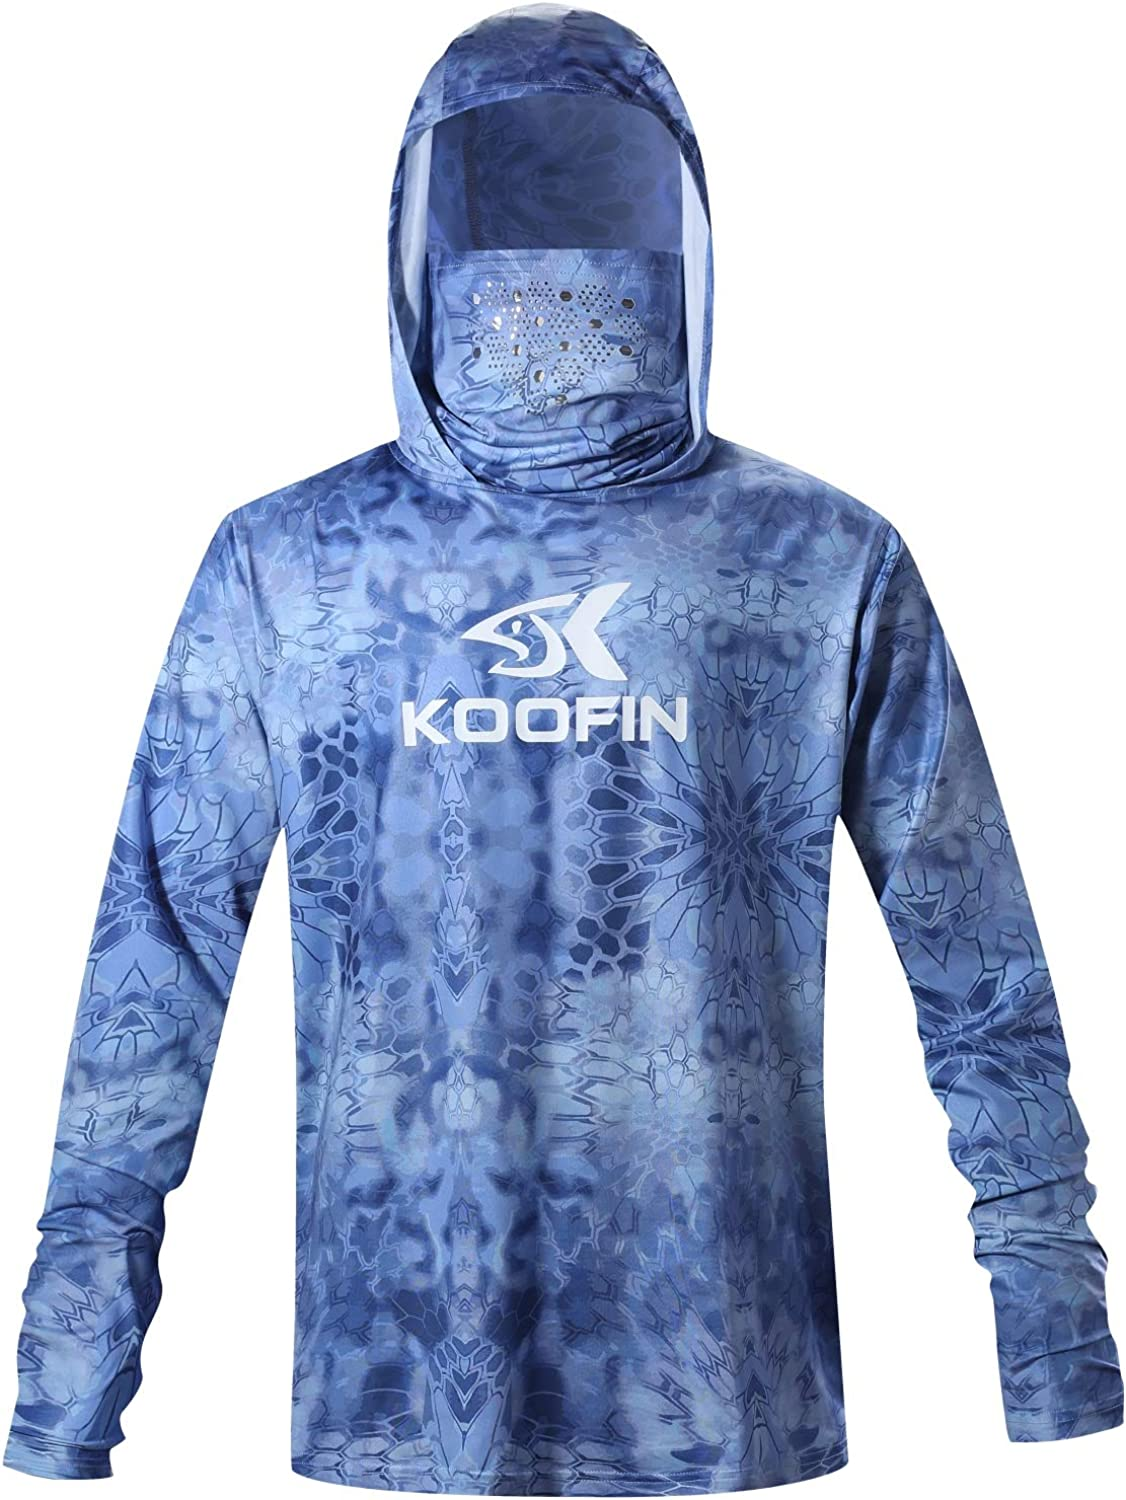 Performance Fishing Hoodie with Face Mask Hooded Sunblock Shirt Sun Shield Long Sleeve Shirt UPF50 Dry Fit Quick-Dry: Clothing